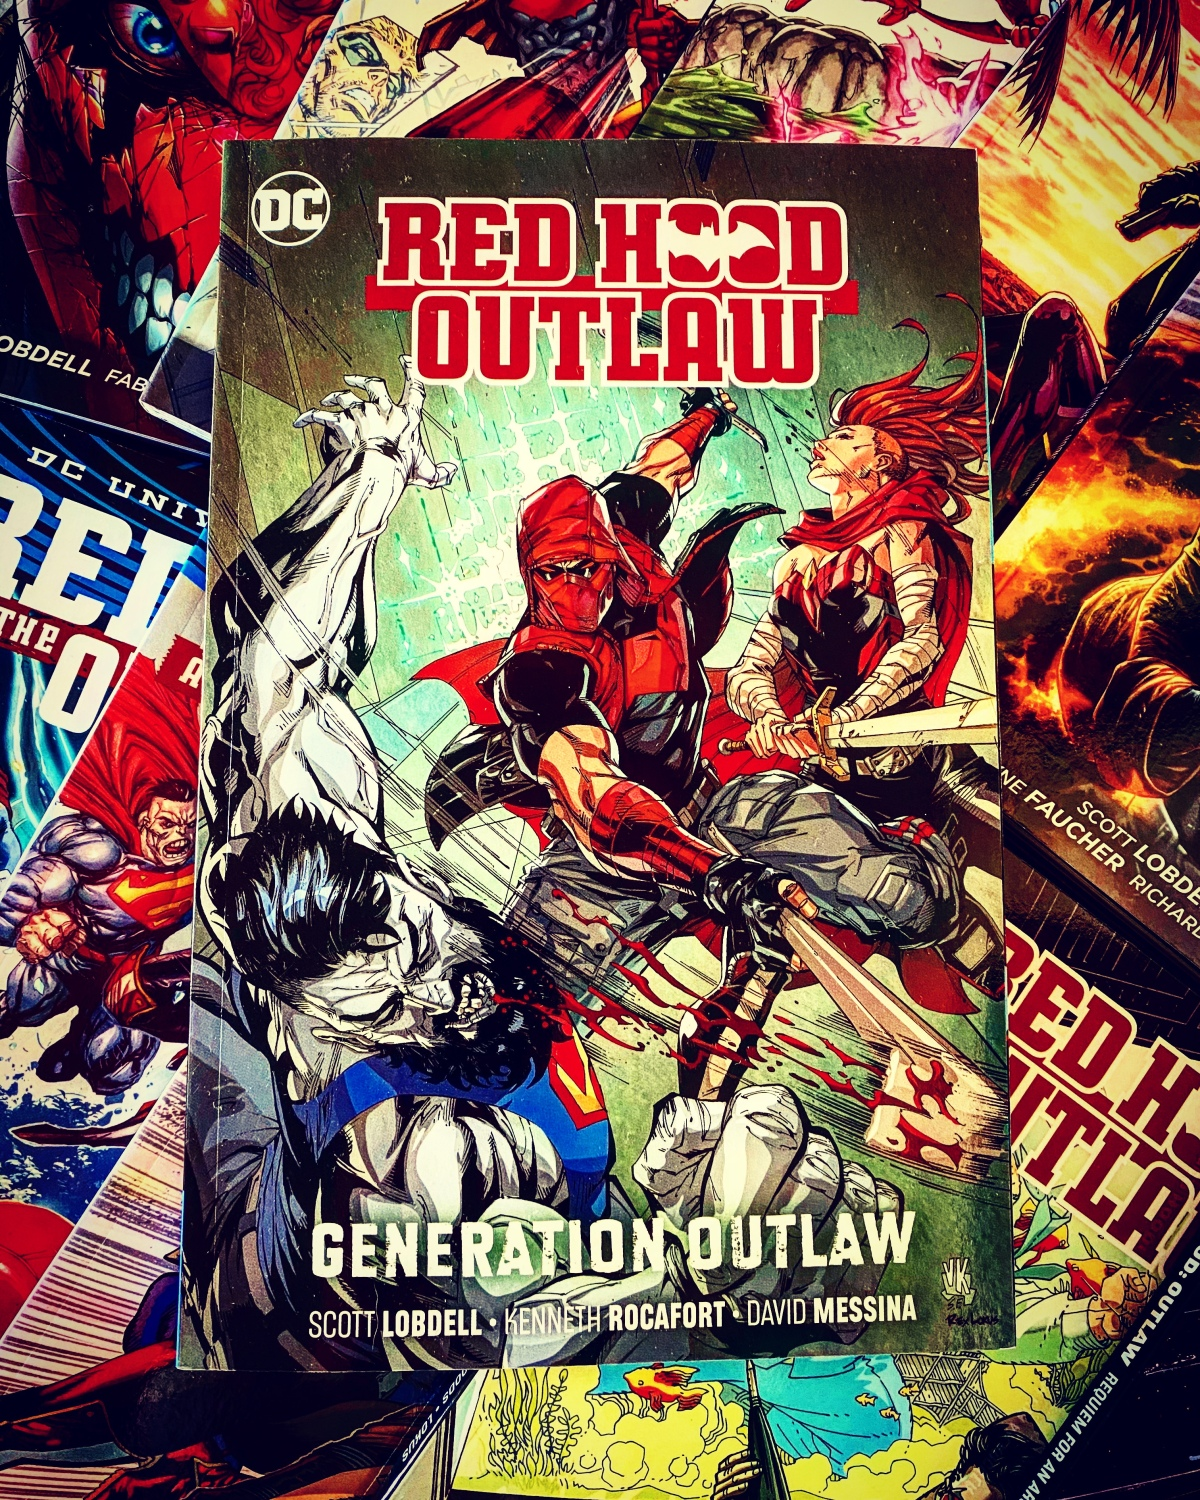 Red Hood: Outlaw Vol. 3: Generation Outlaw |Review